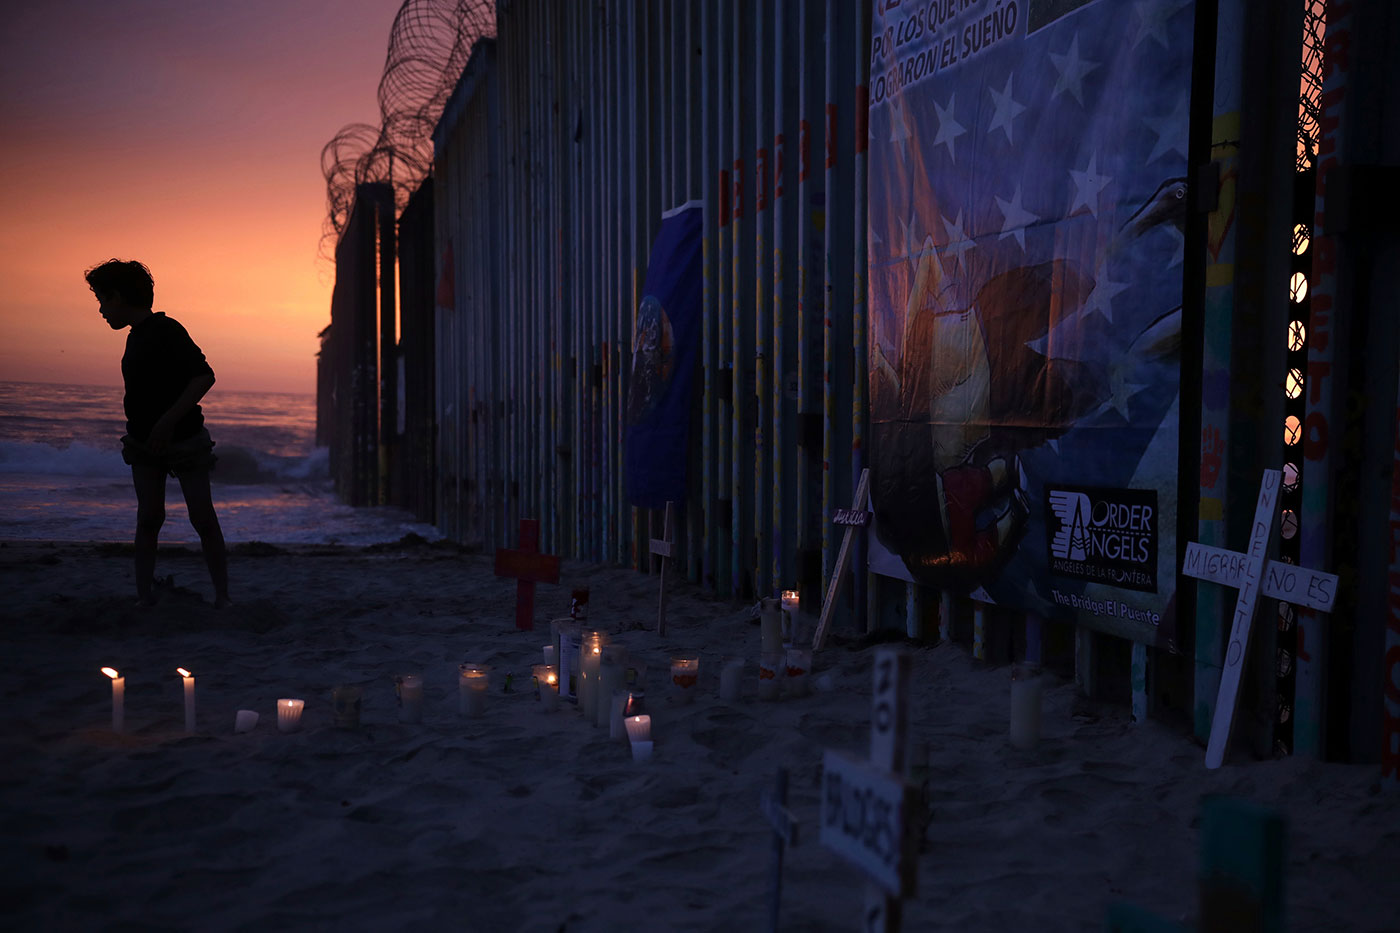 A youth stands by the border fence that separates Mexico from the United States.